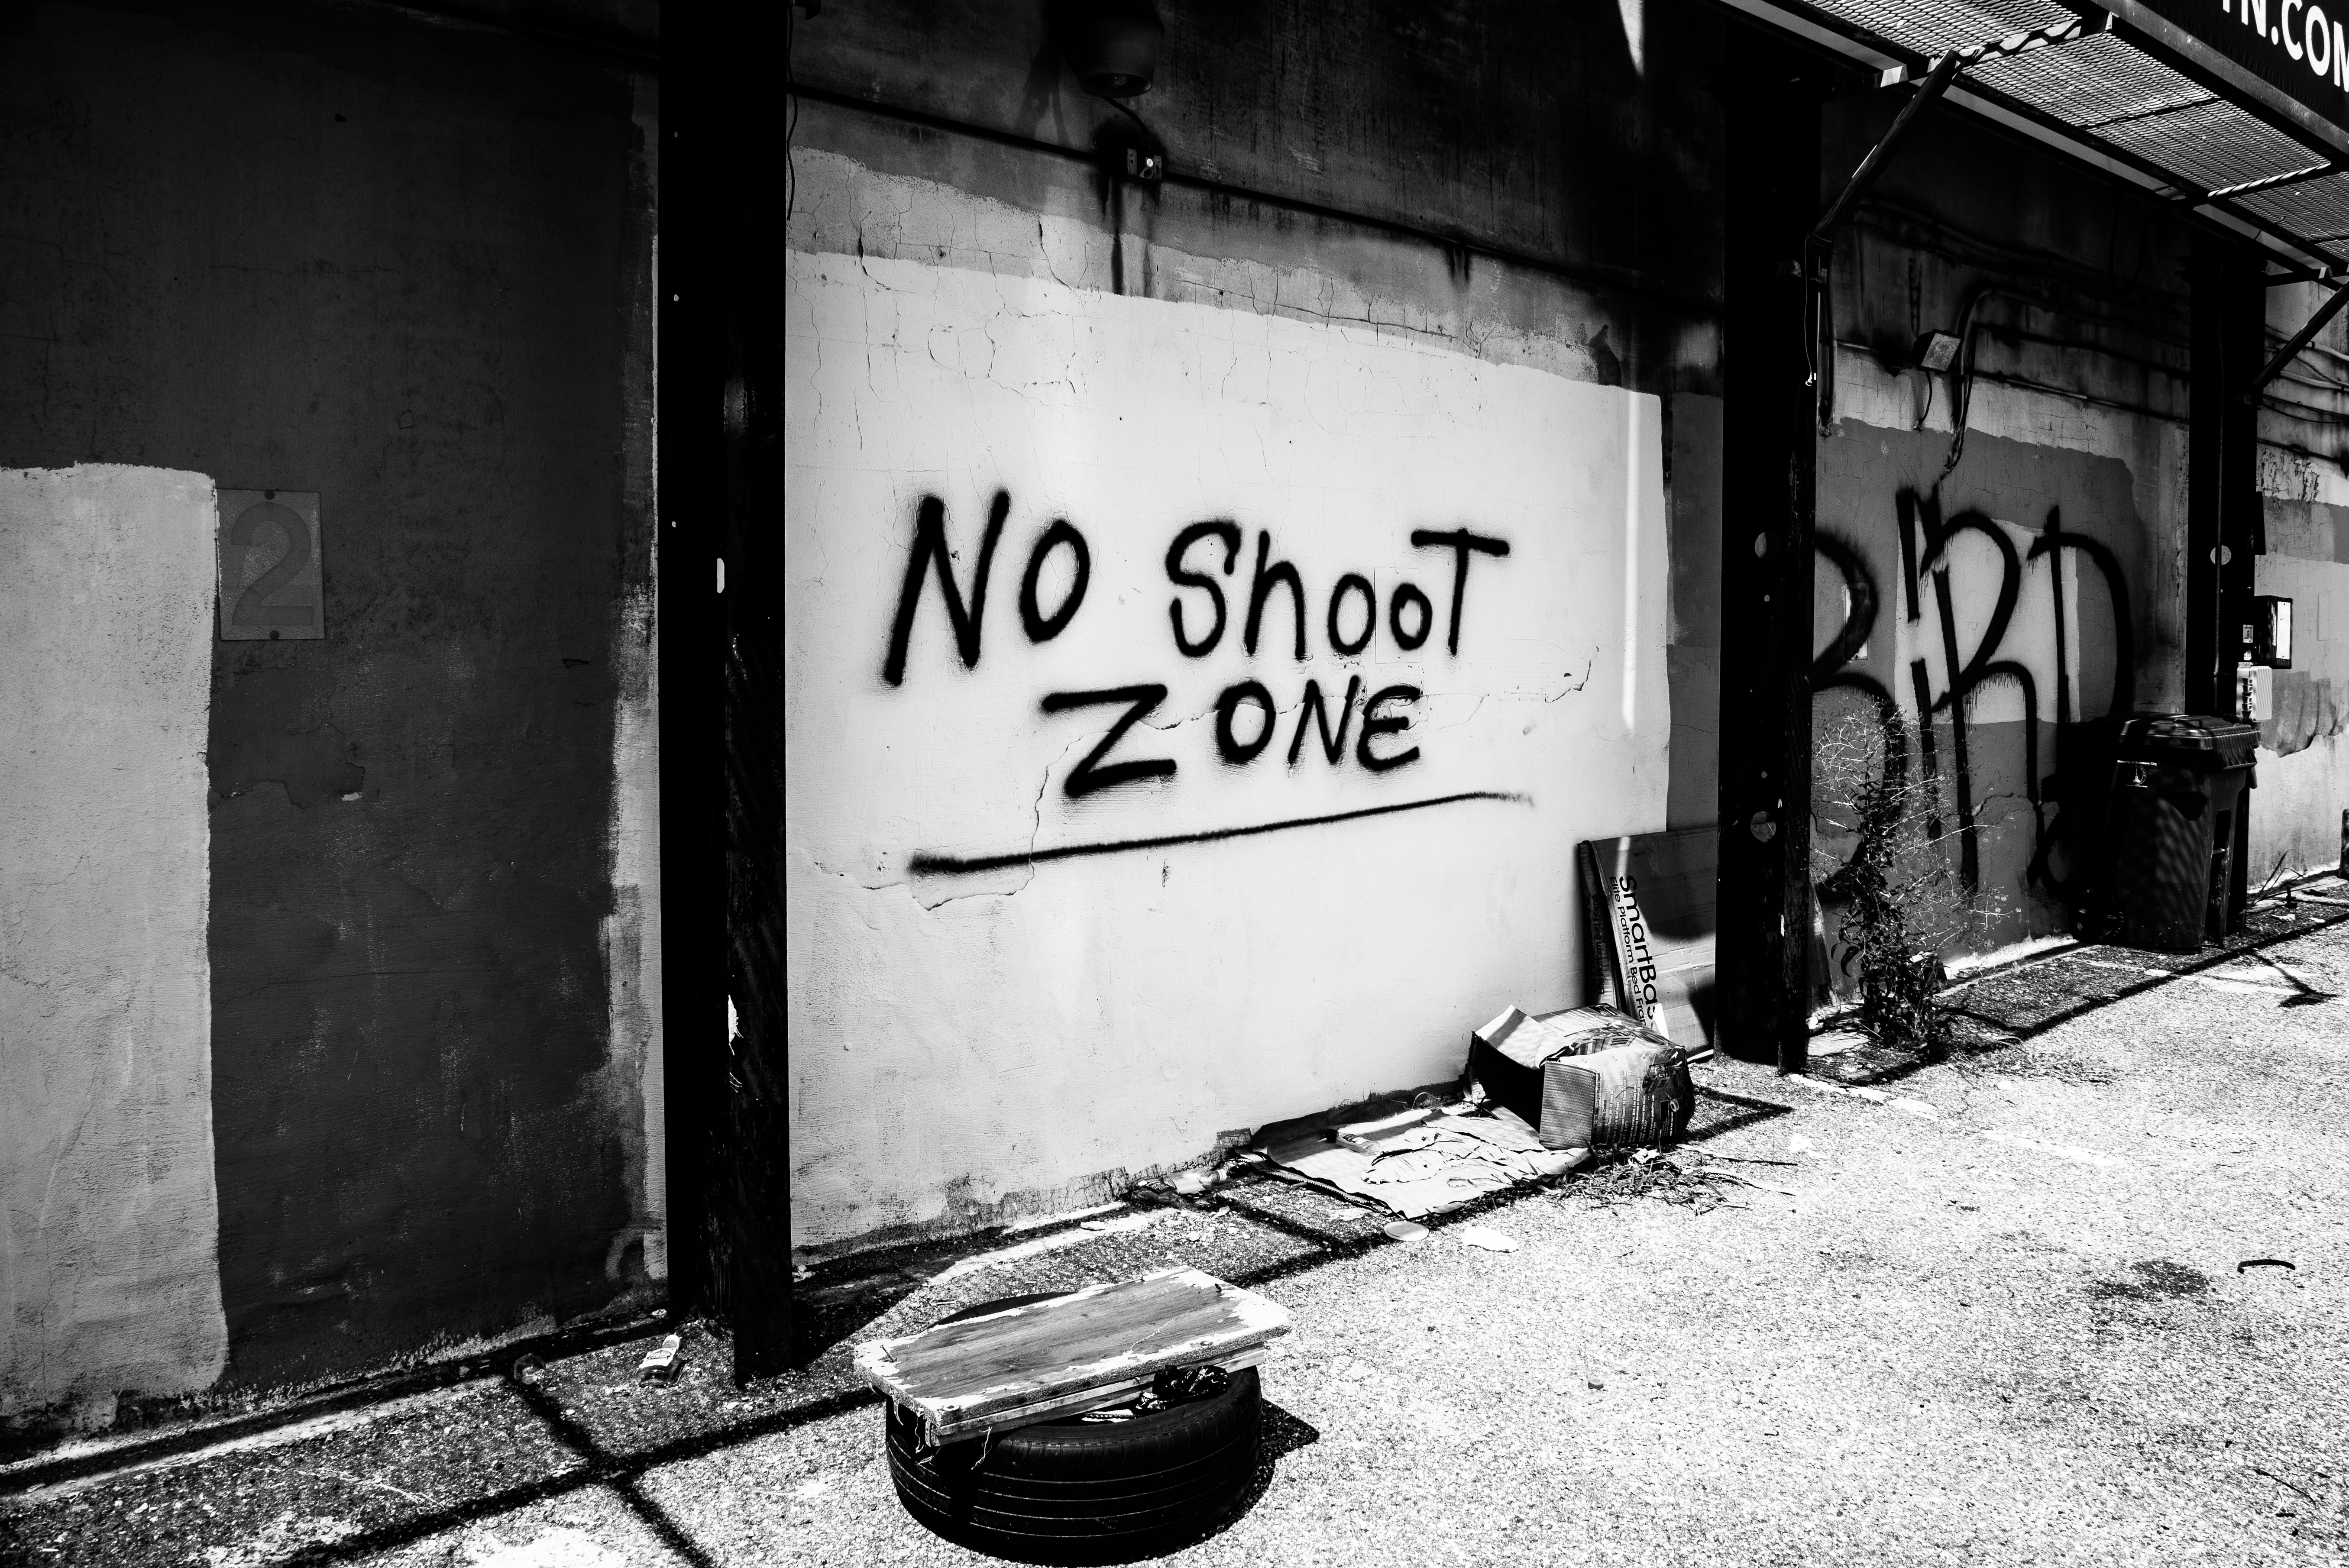 No shoot zone wall in greyscale photography